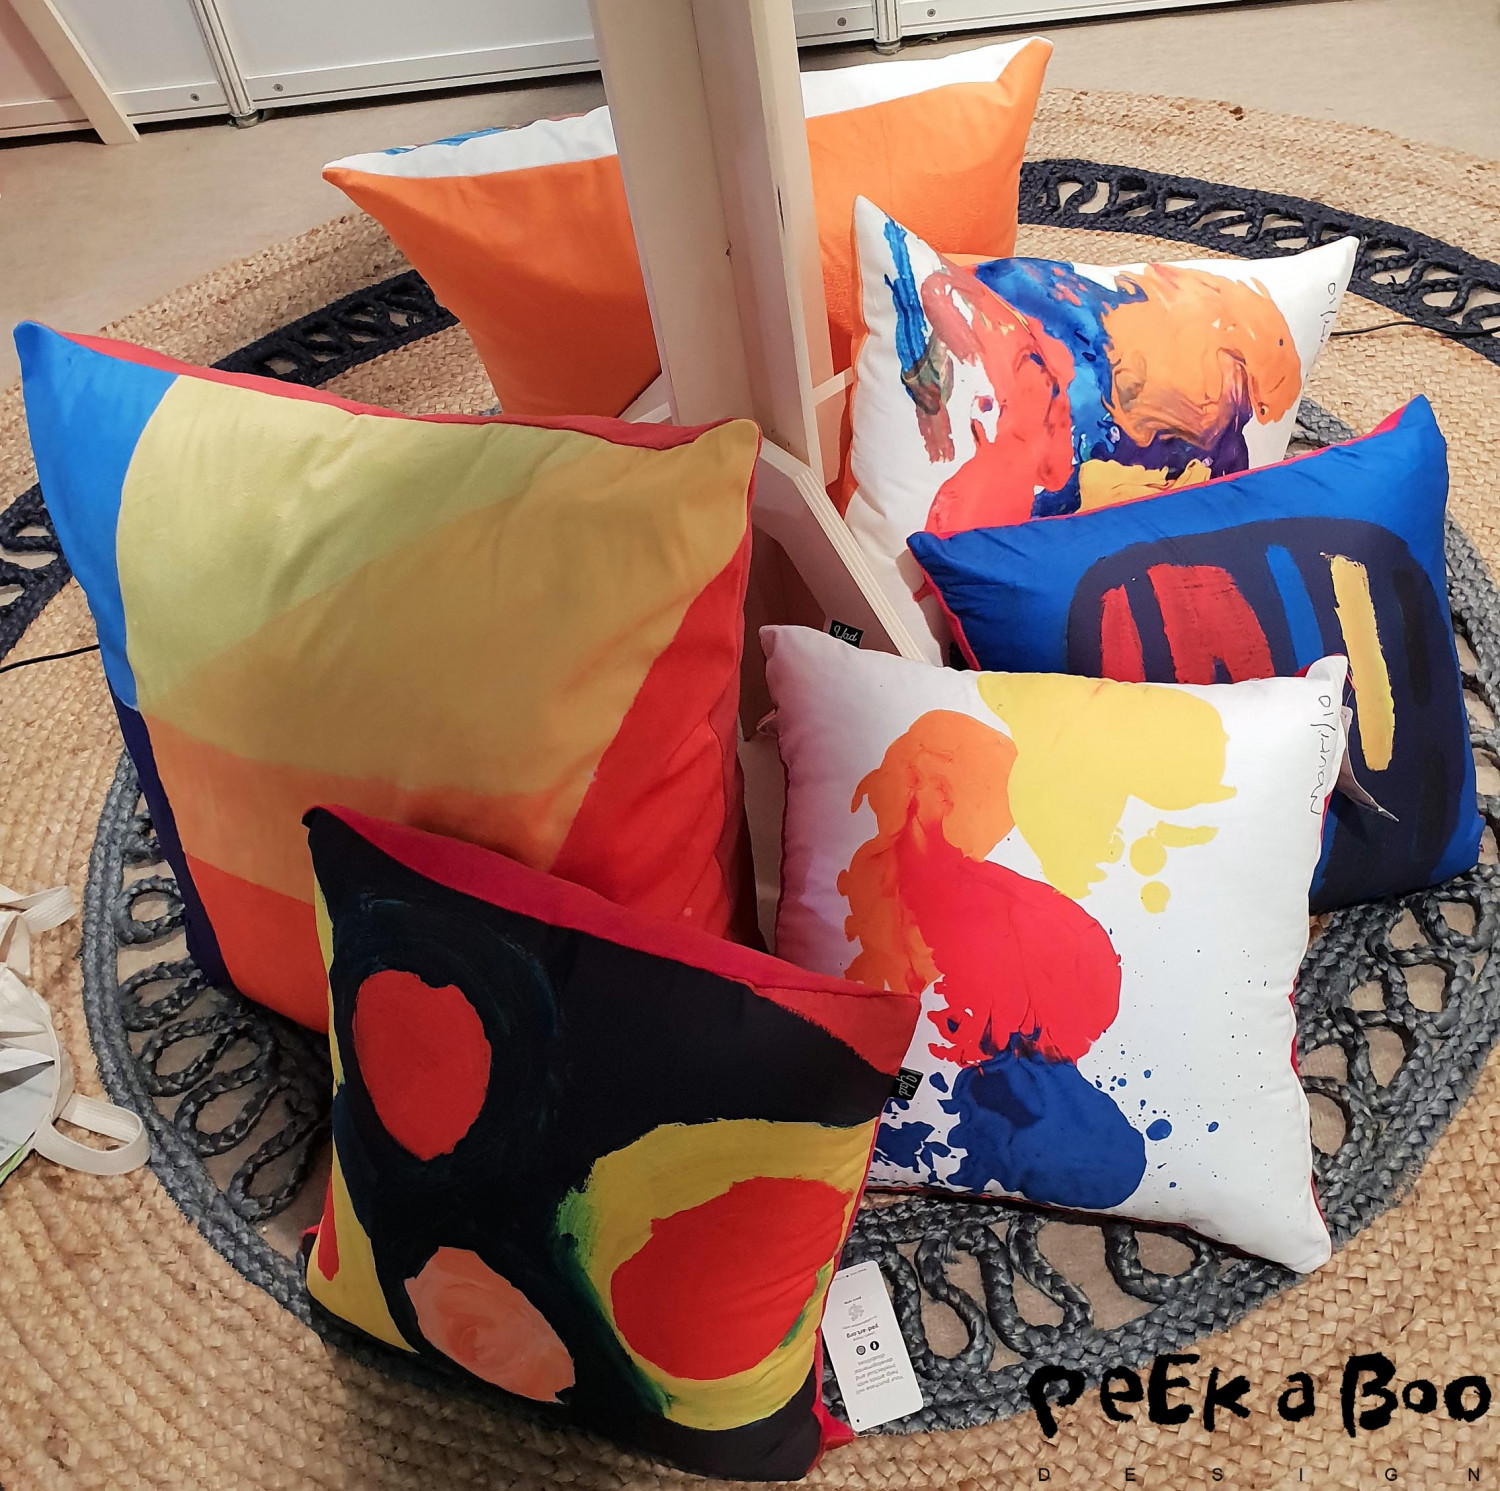 Colourful pillows made by JAD art. This is art made by people with different disabilities. Art painted with the heart. Go check out their website for much more interior that gives good sense supporting.